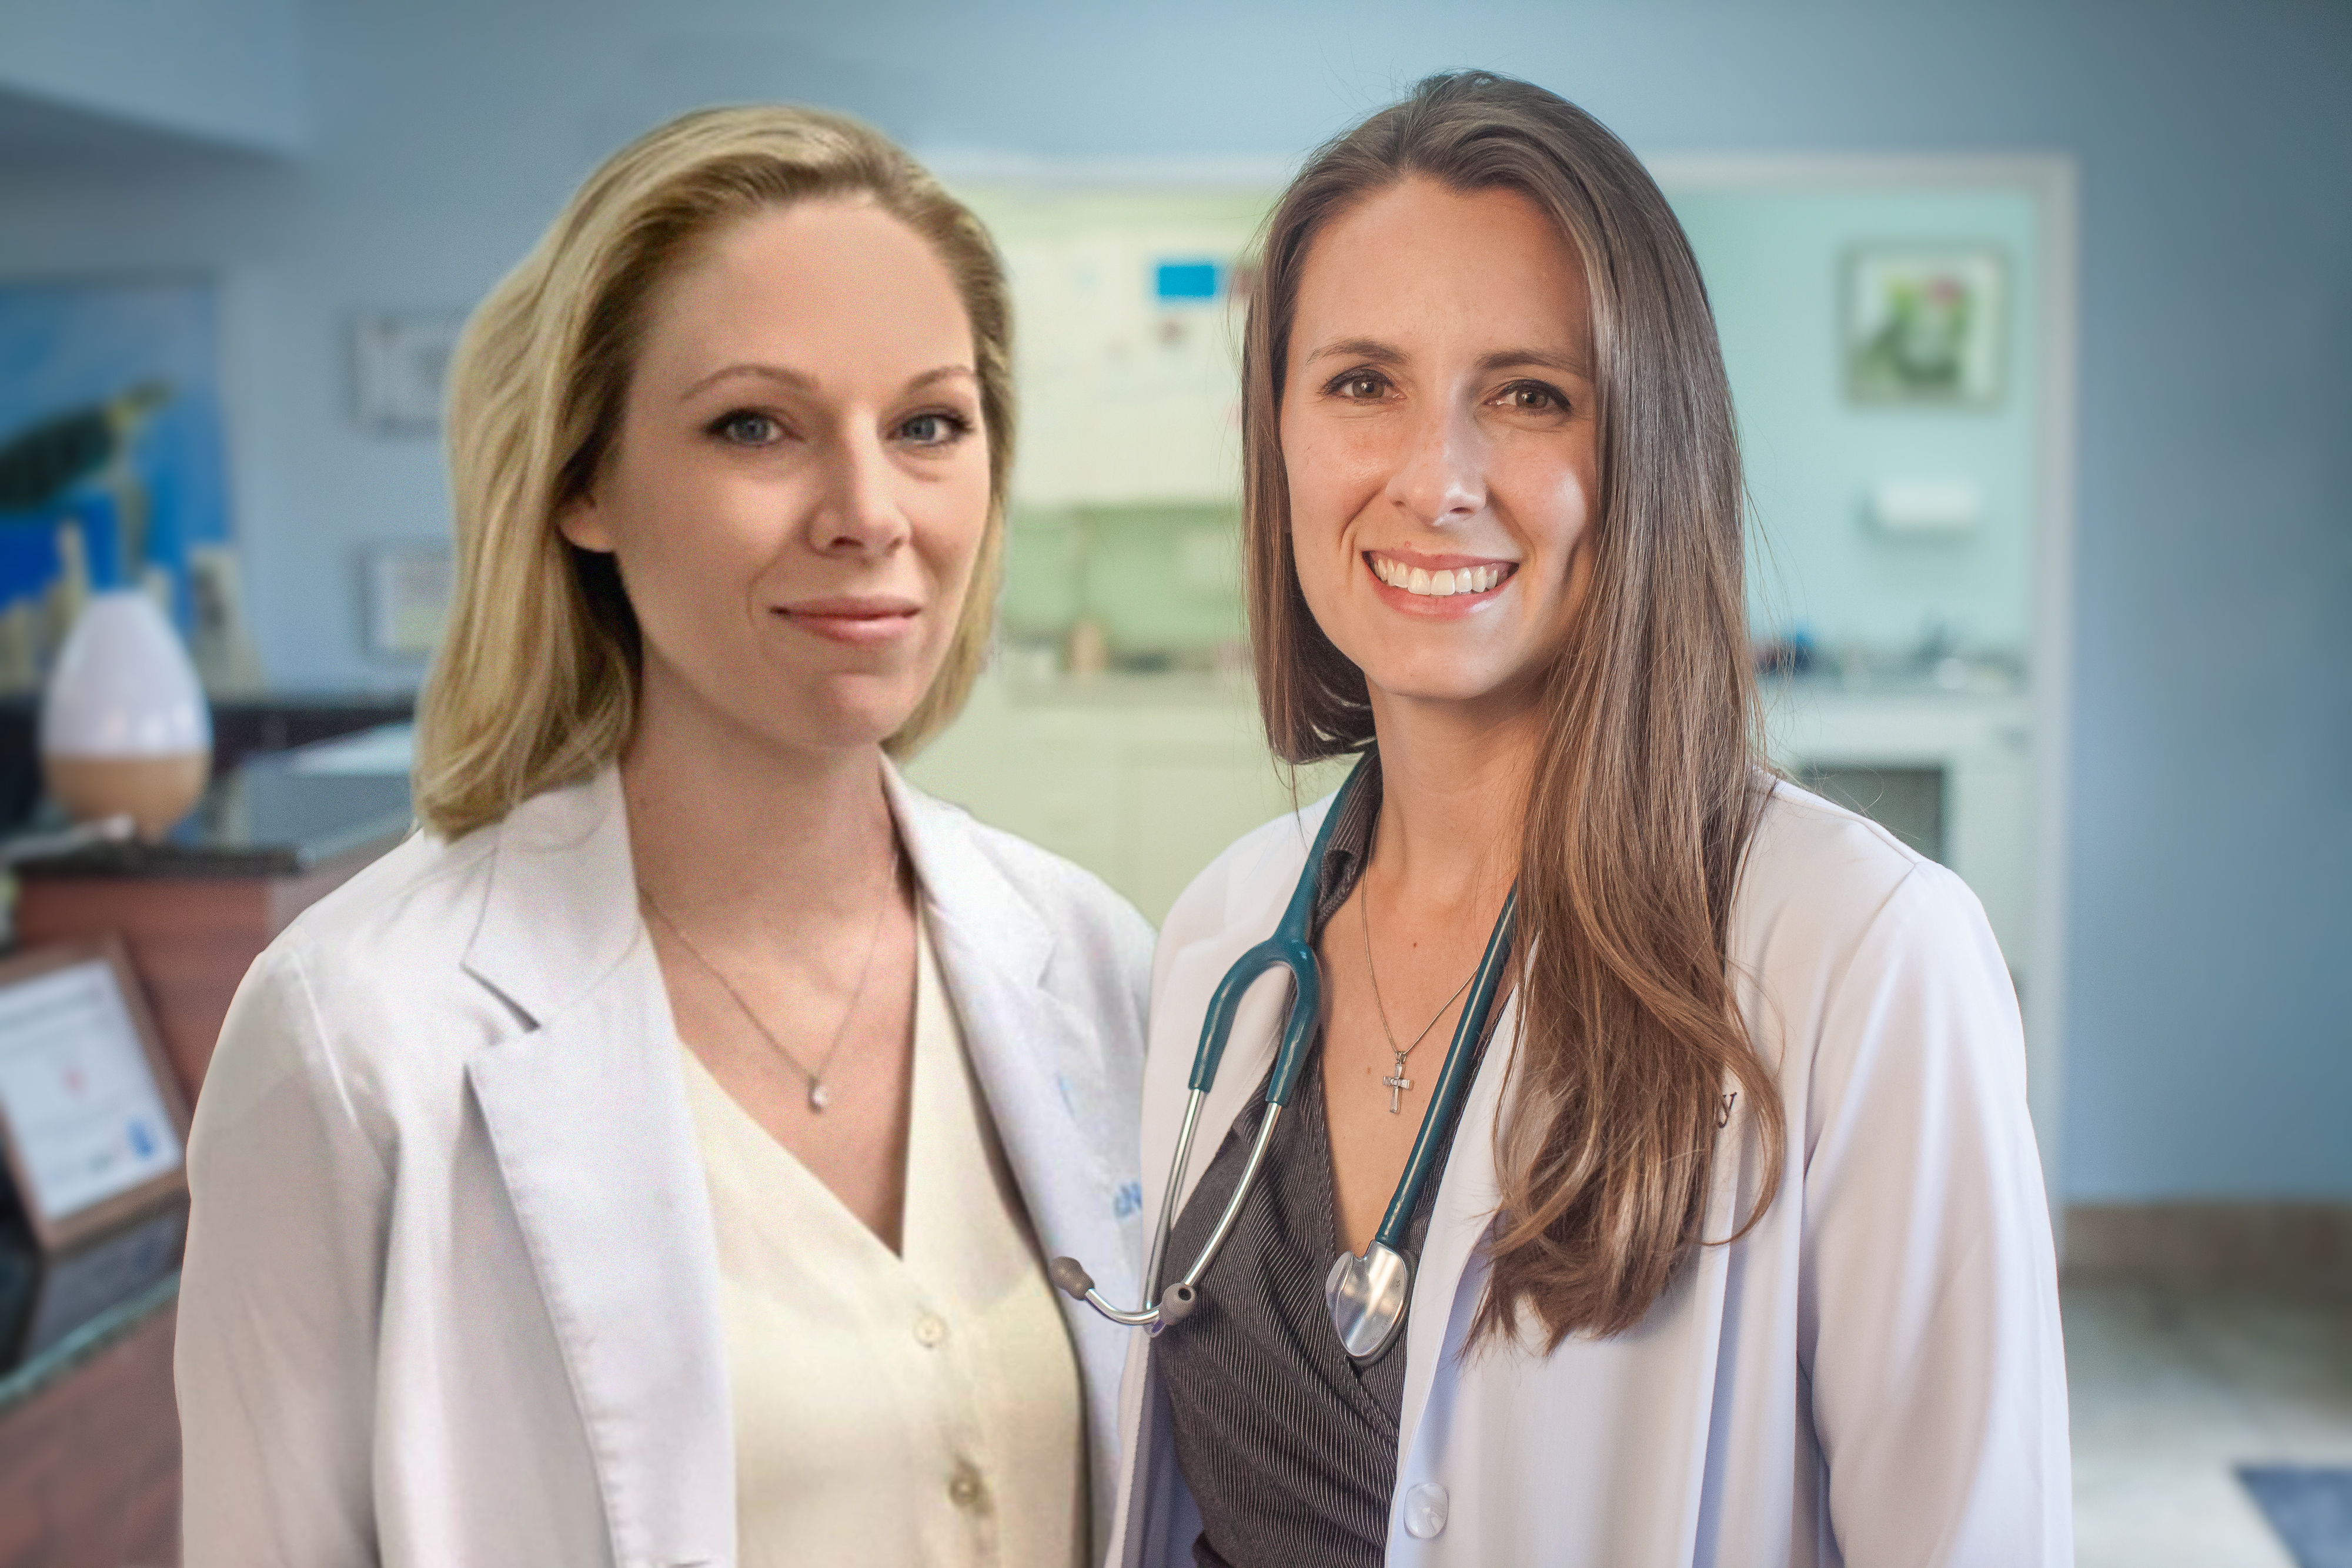 Drs Casey and Ashley